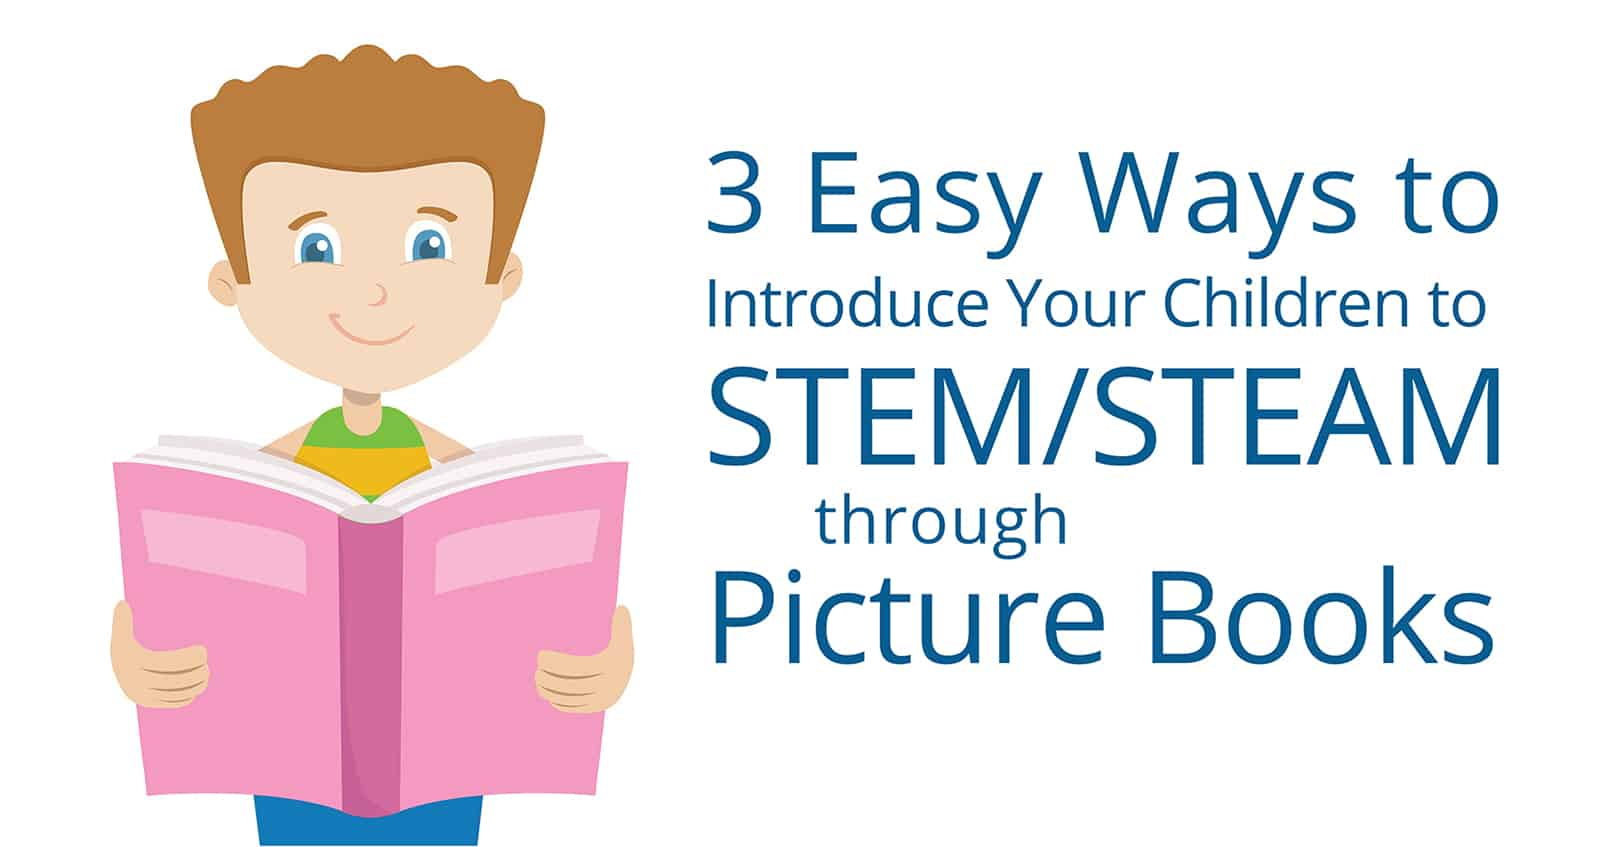 introduce children to STEM through picture books